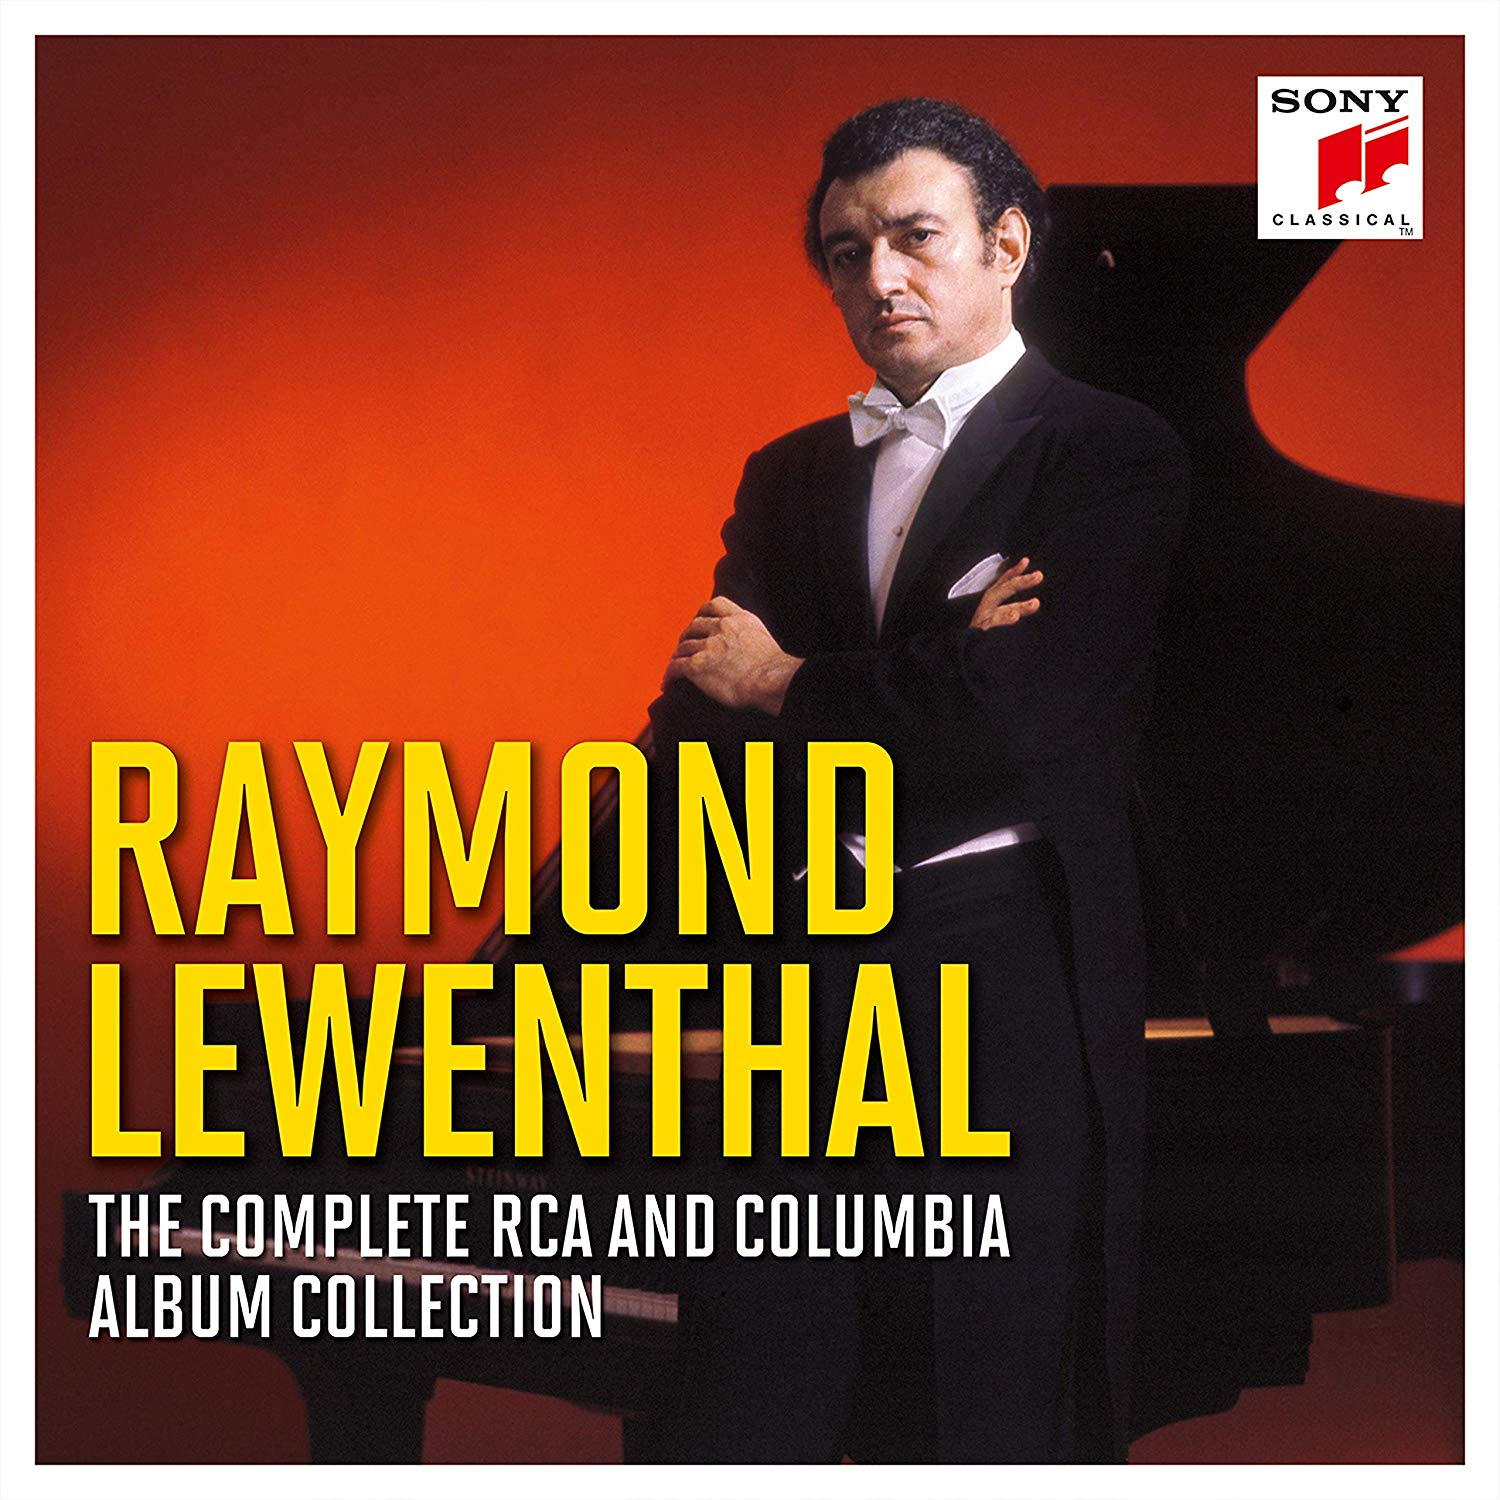 Raymond Lewental: The Complete RCA and Columbia Album Collection